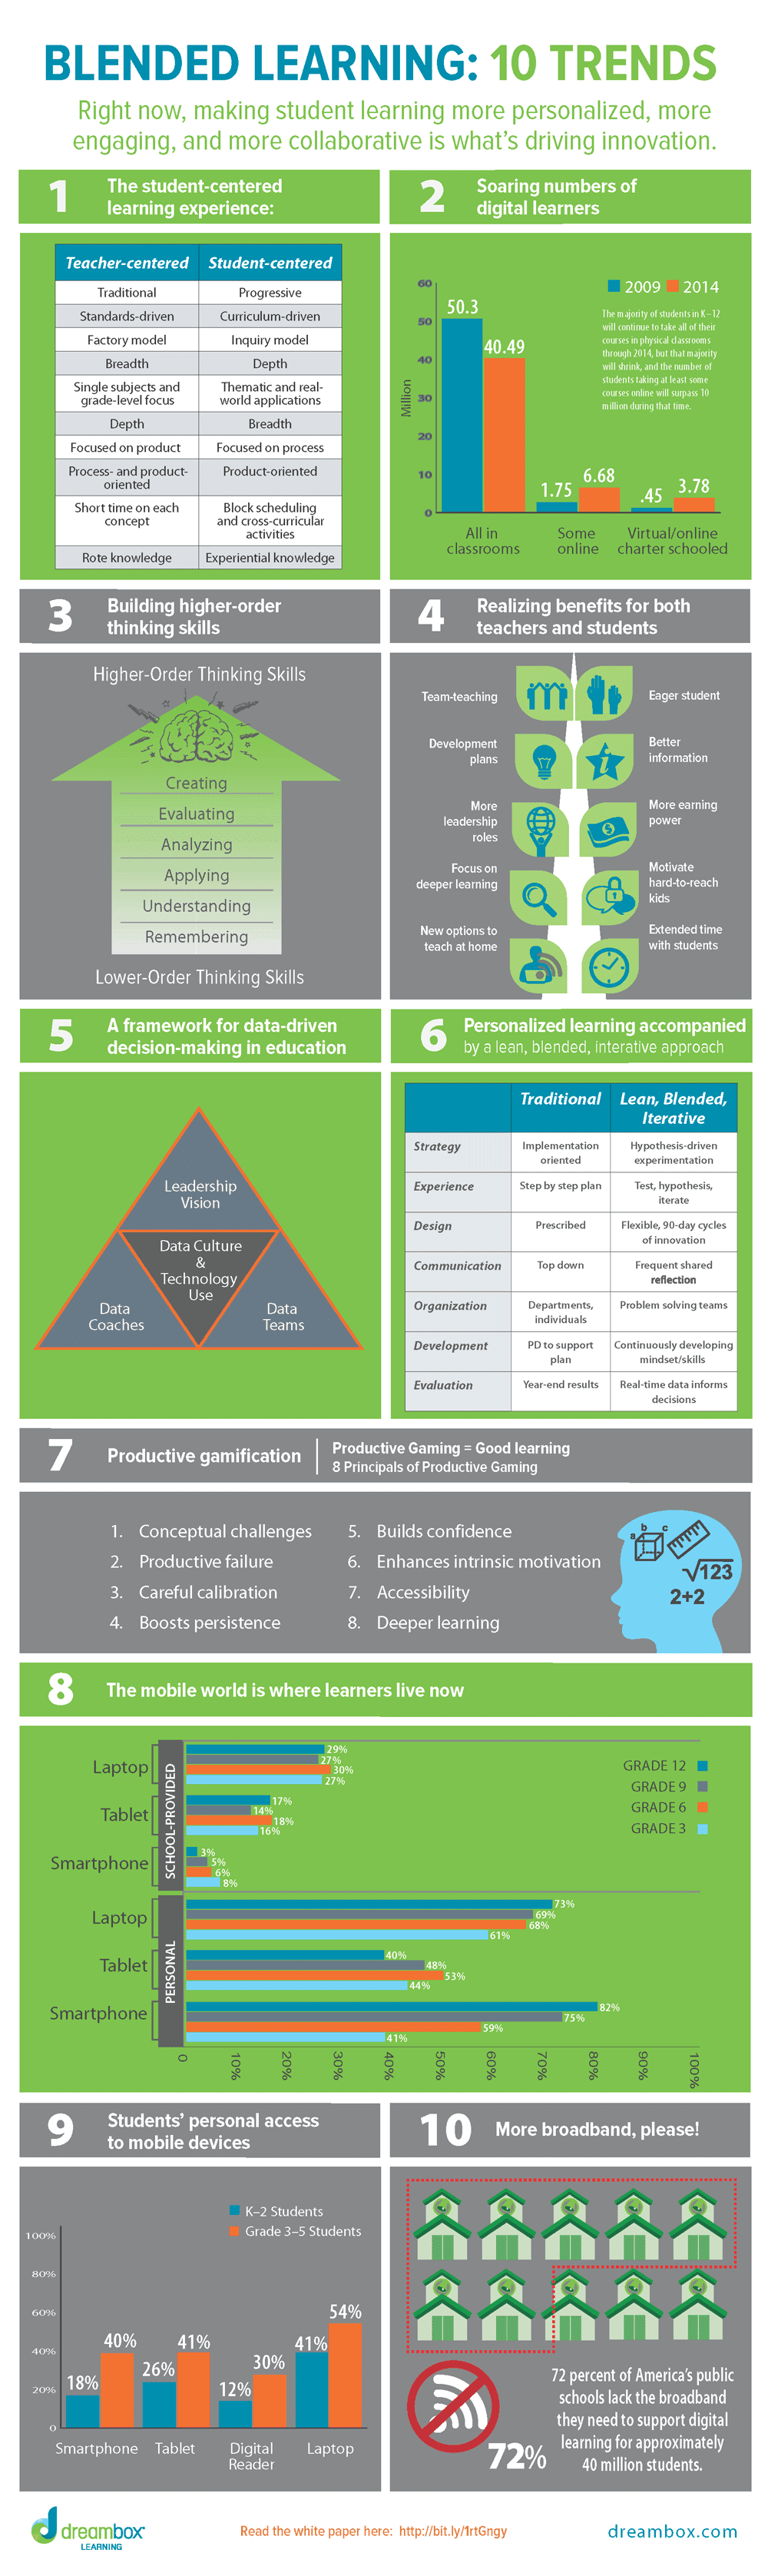 10-blended-learning-trends_full